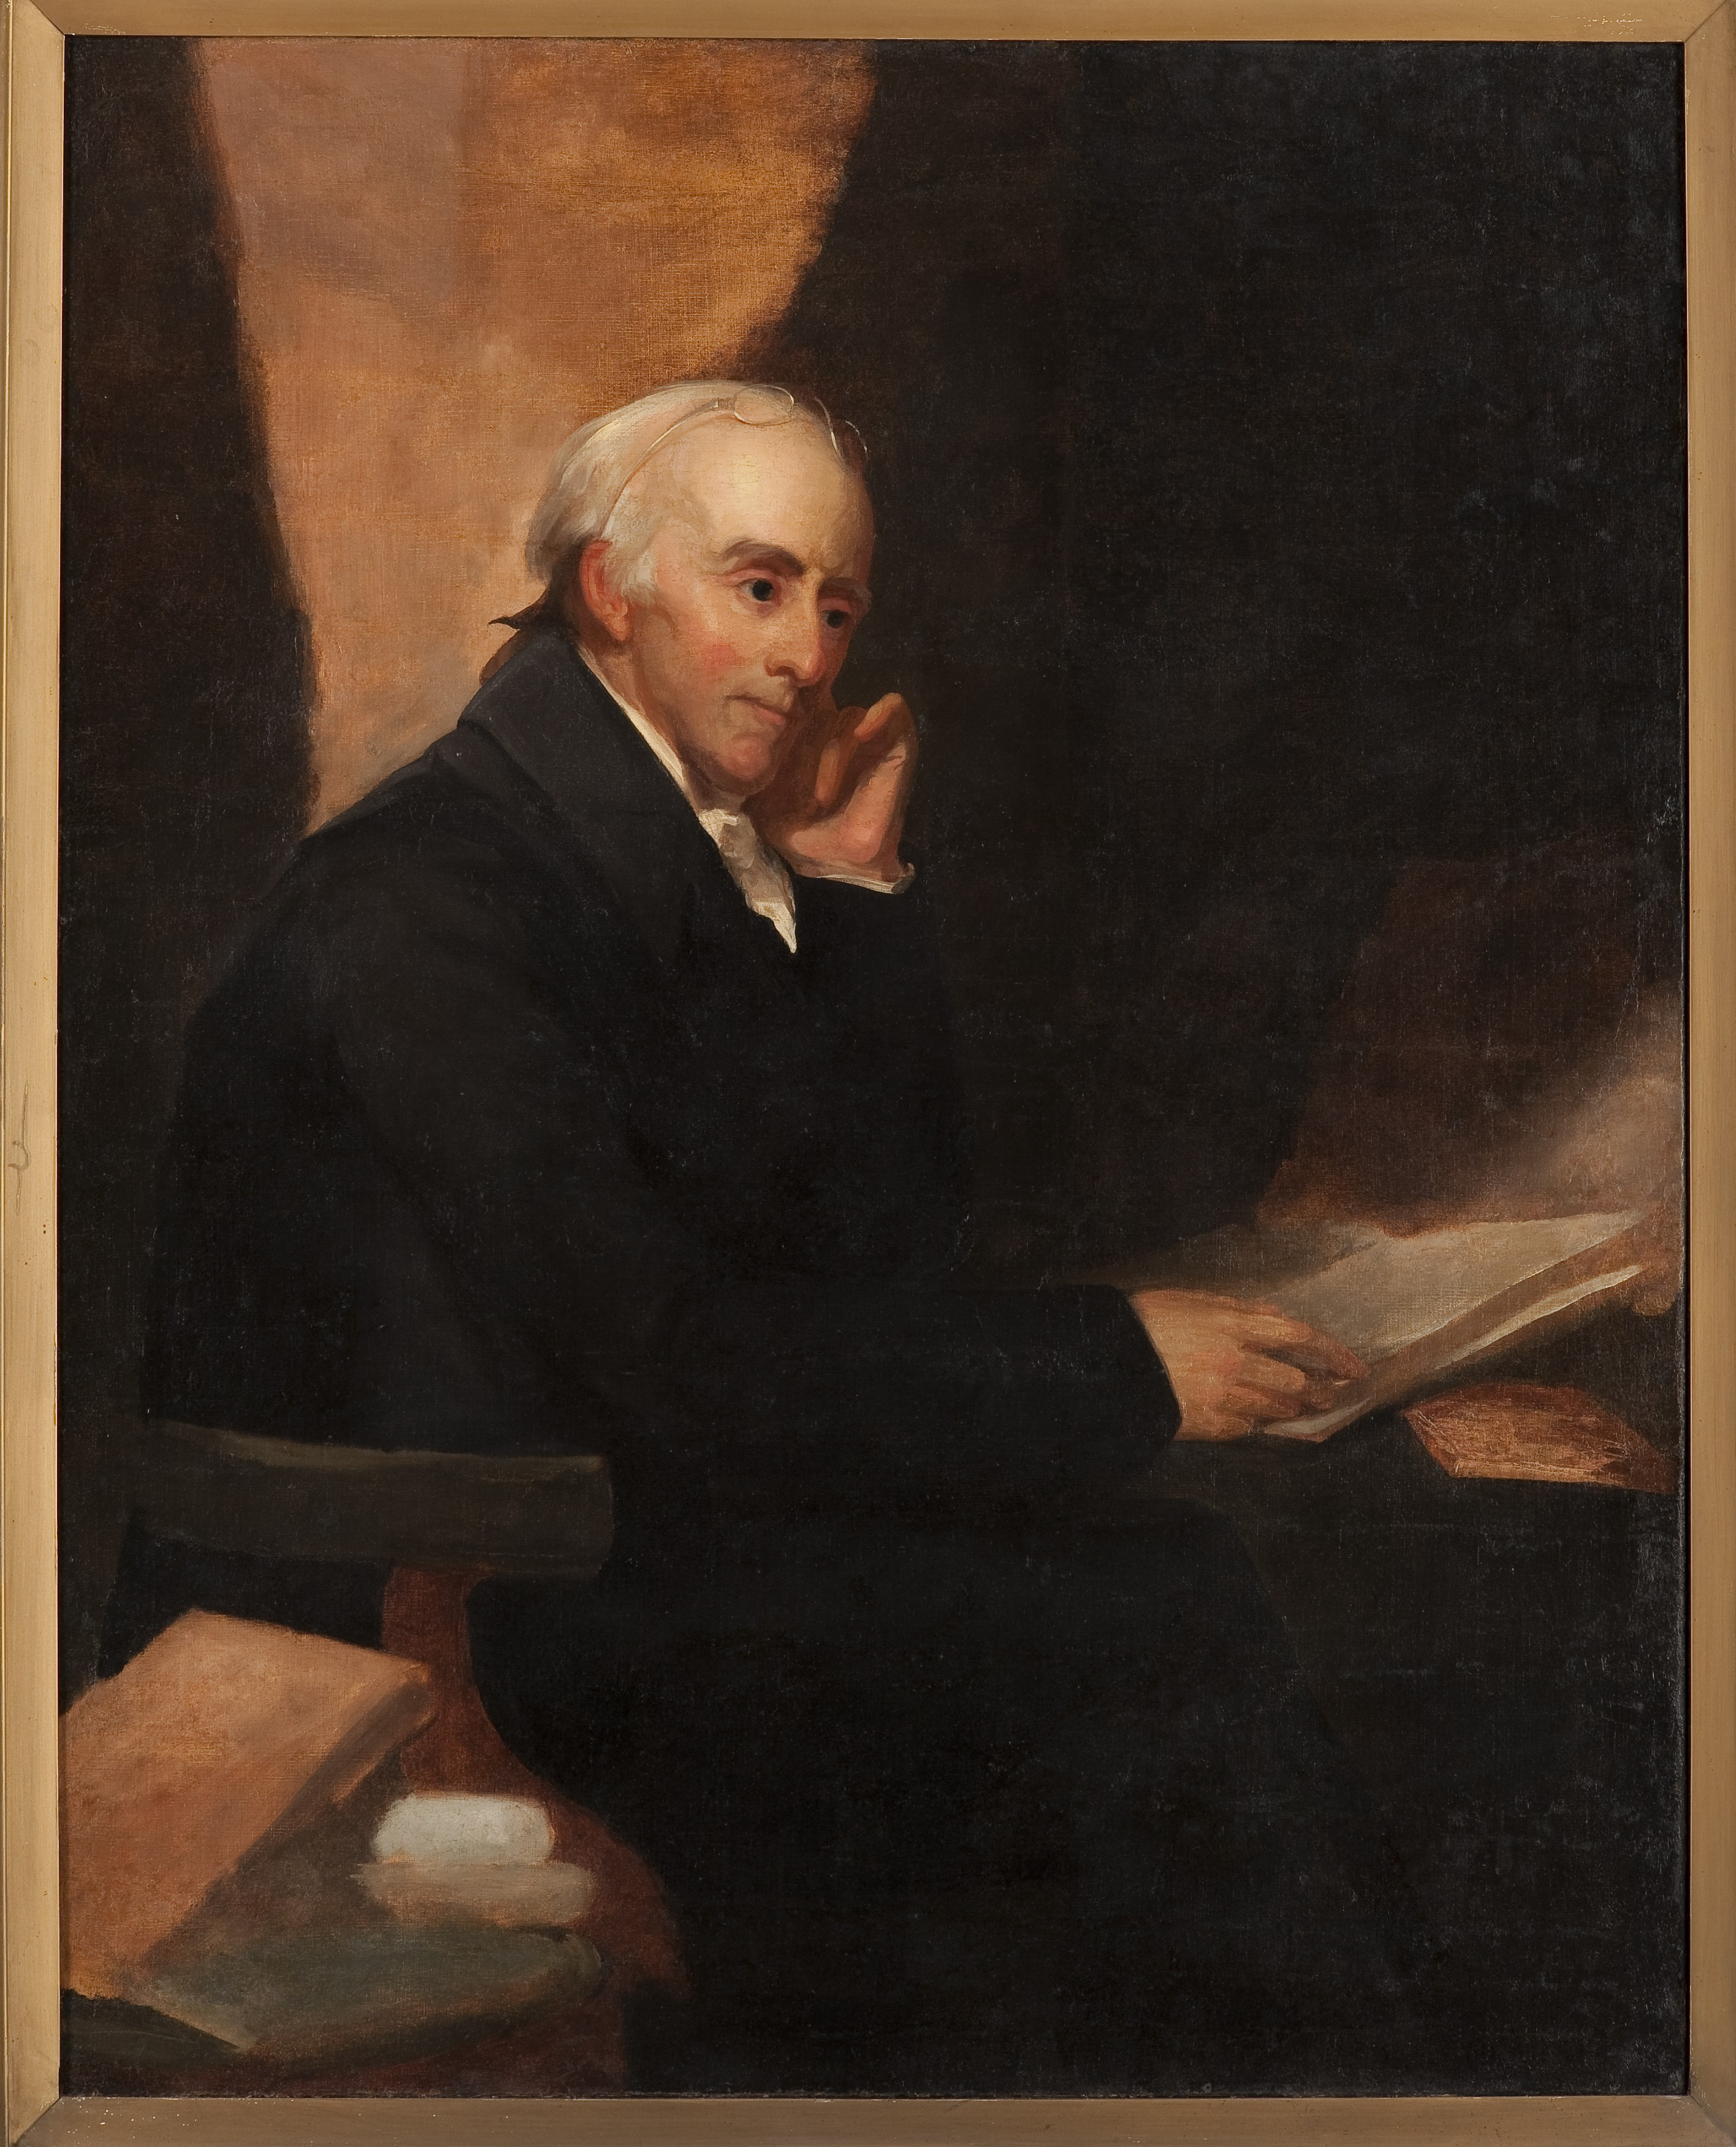 painting of man in black robes seated at desk